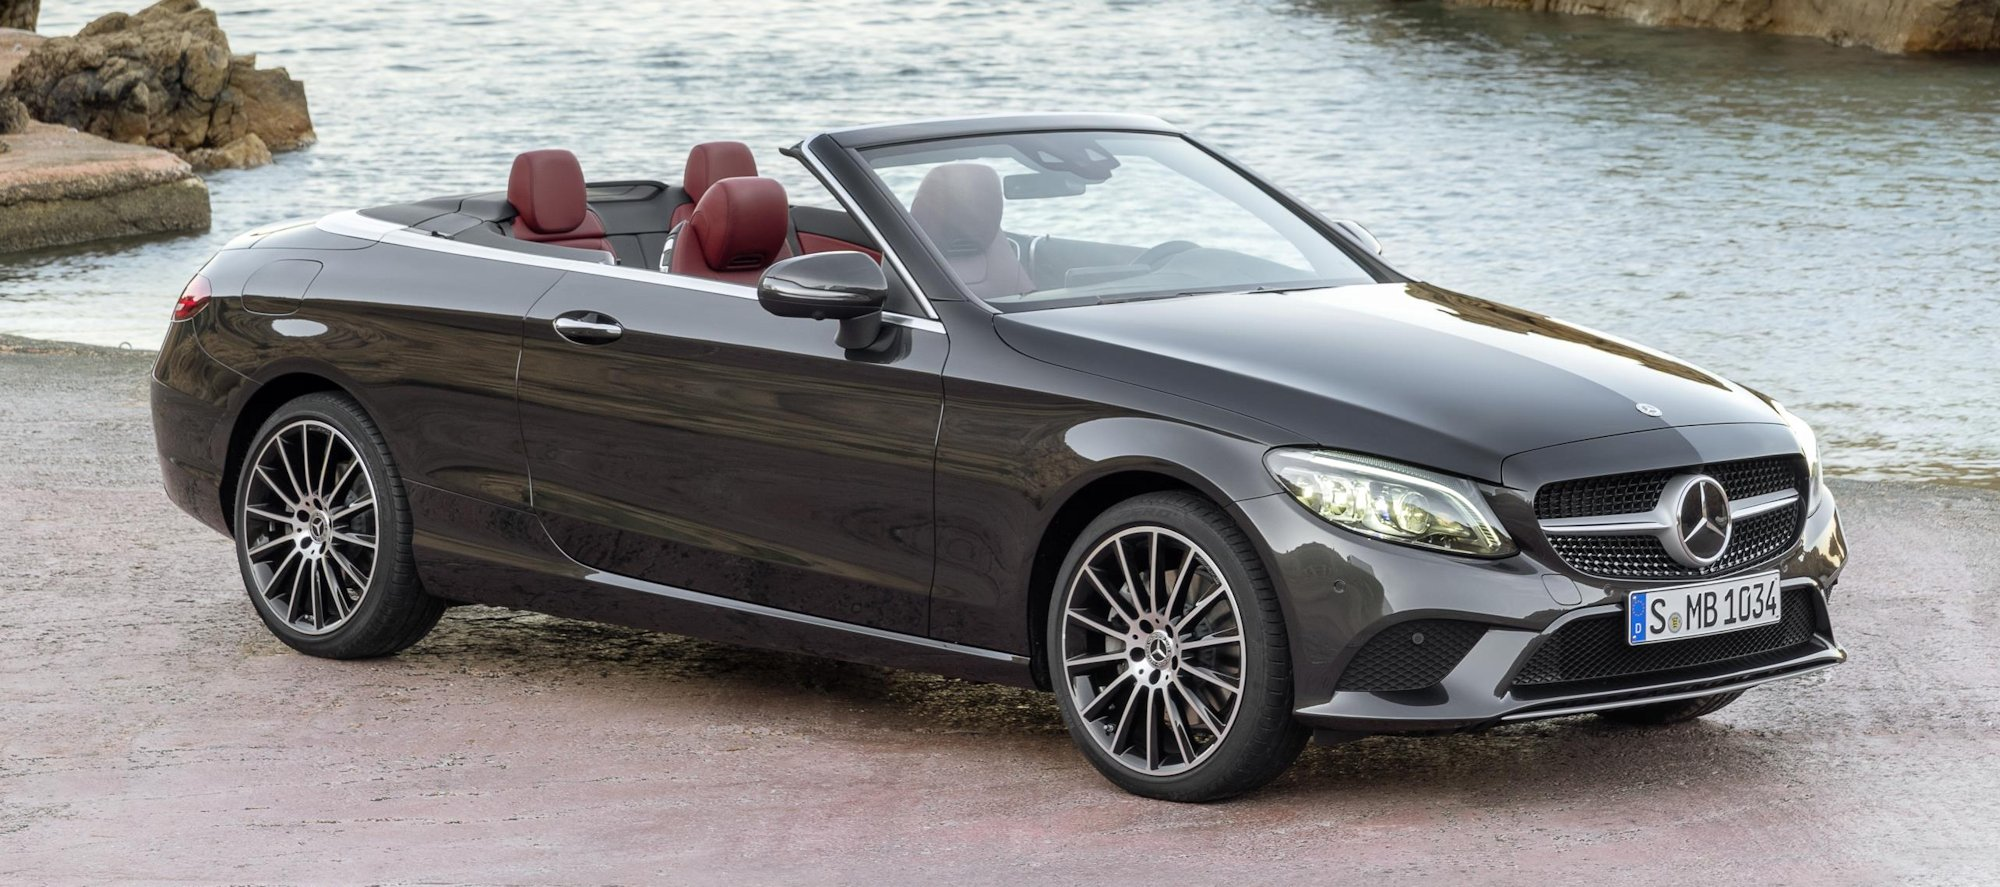 2019 mercedes benz c class coupe and cabriolet - Mercedes c class coupe convertible ...